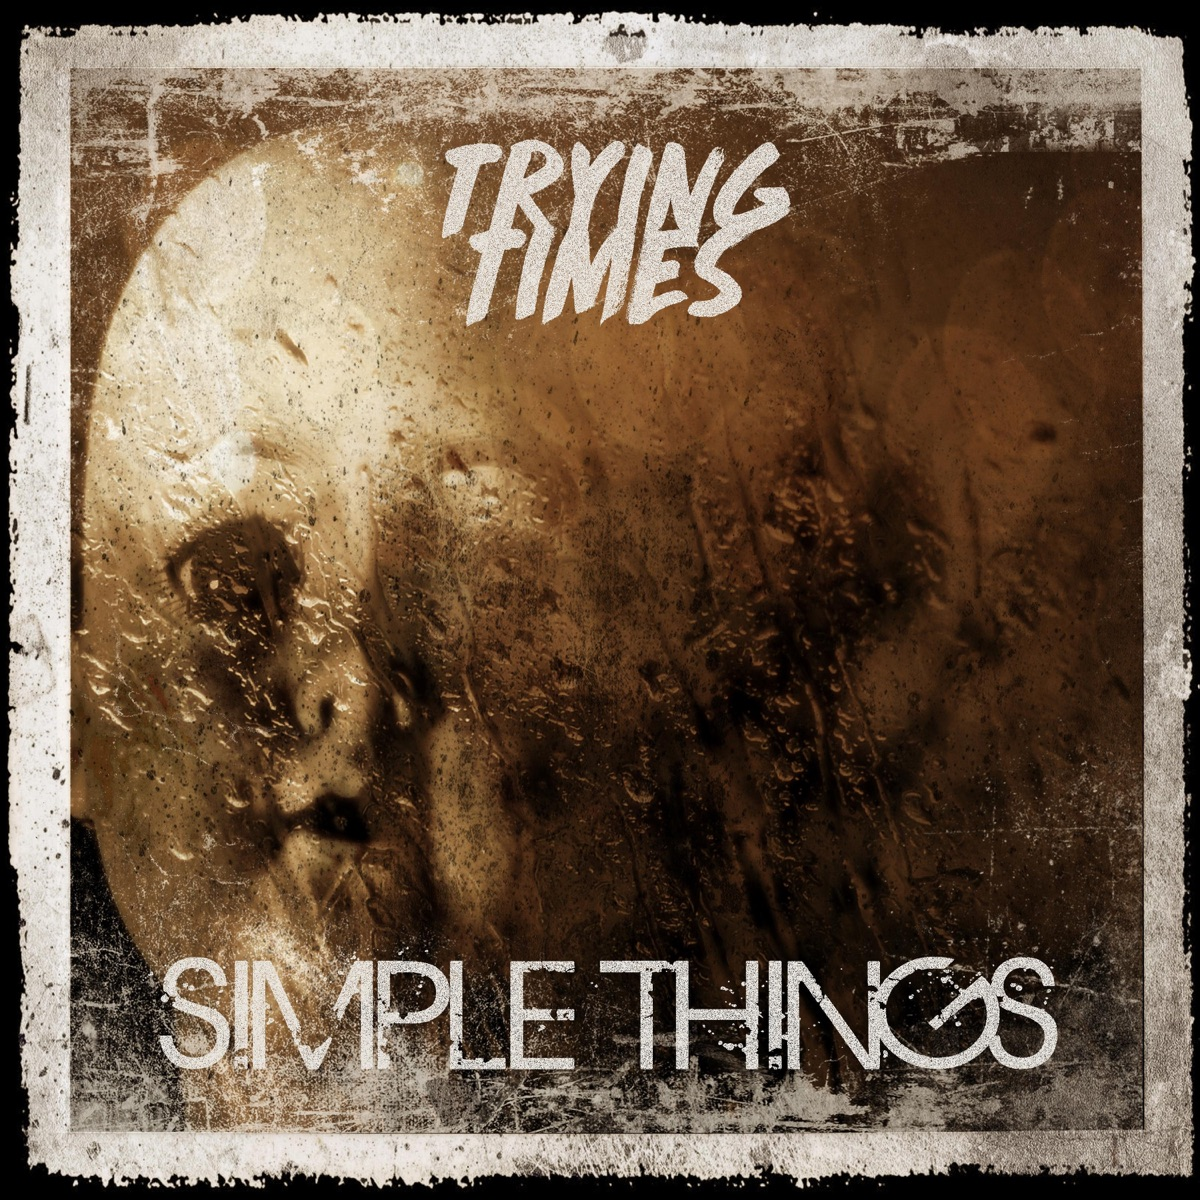 Simple Things - Single Trying Times CD cover